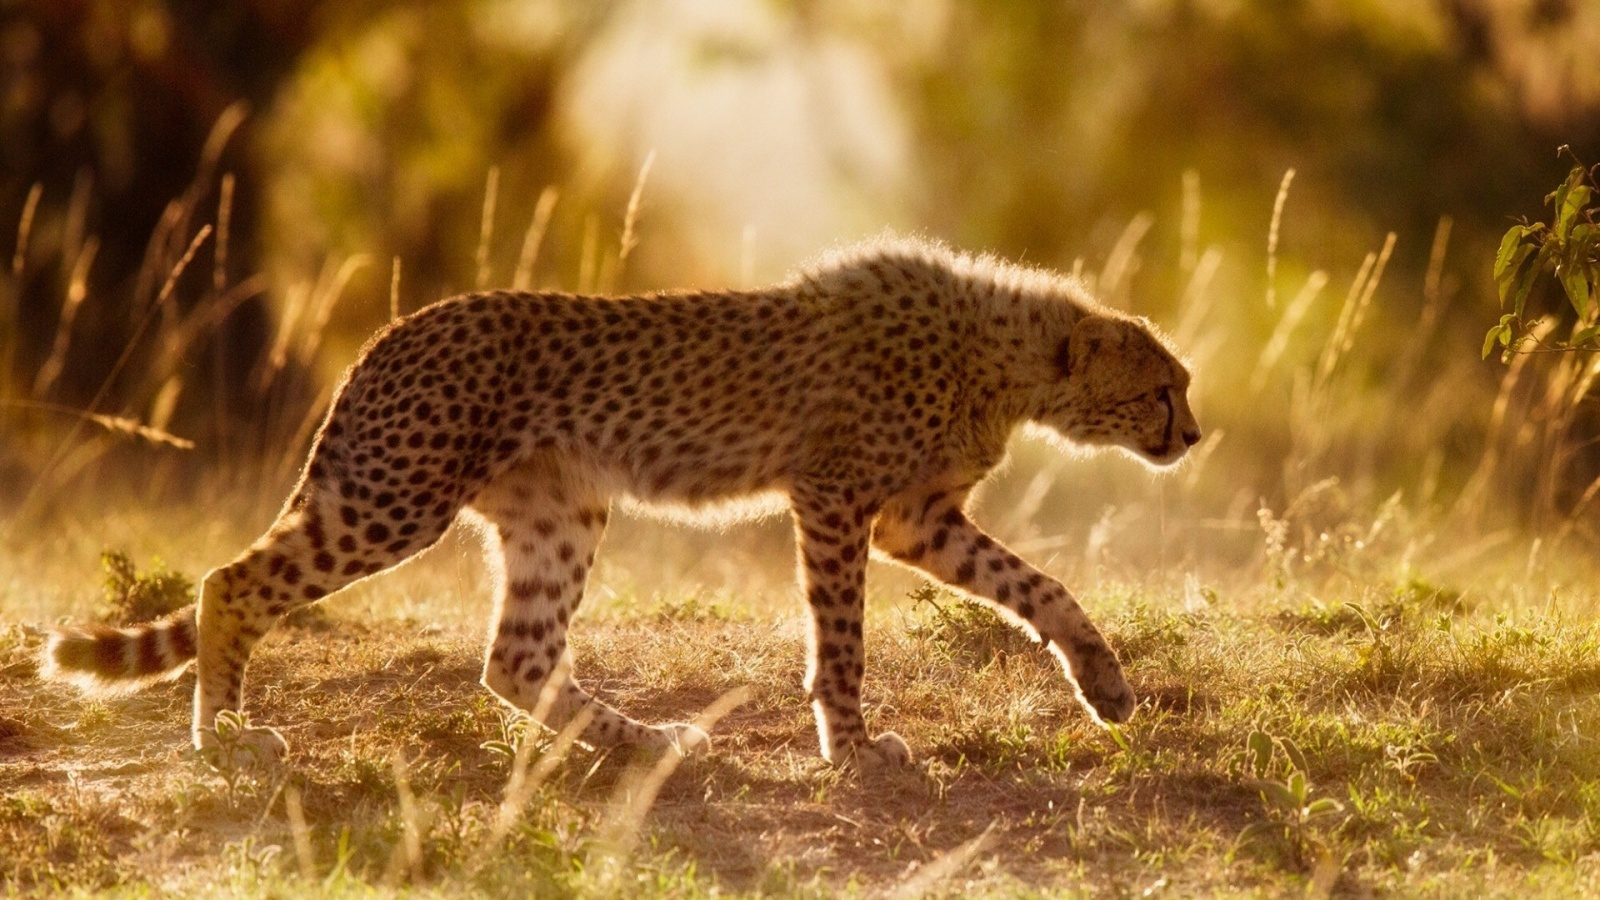 Africa Cheetah Wild Cat